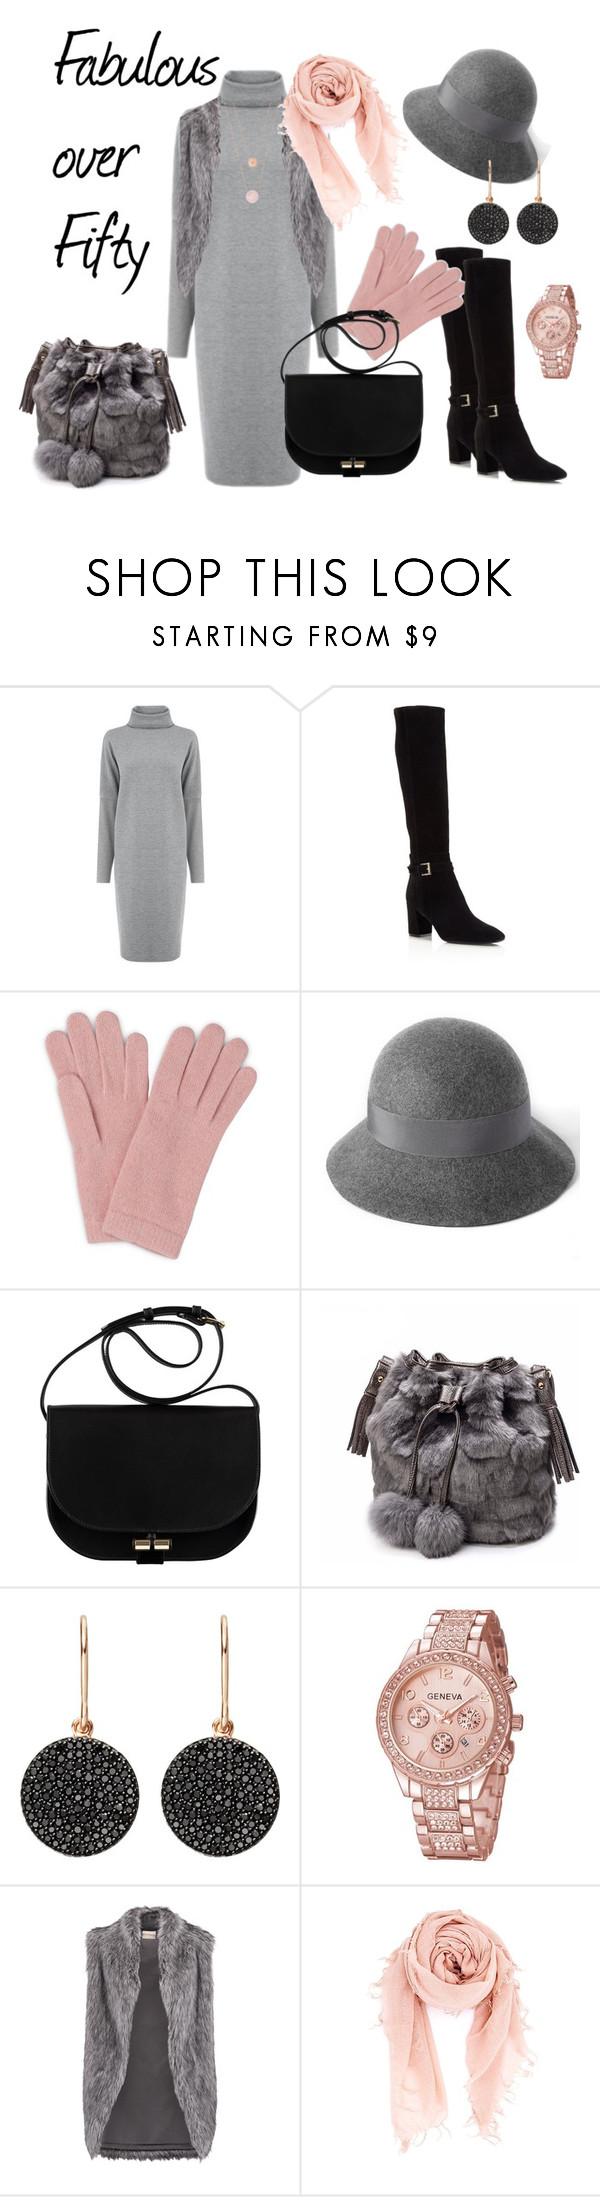 """""""Fabulous Over Fifty"""" by marionduffield ❤ liked on Polyvore featuring Warehouse, Kate Spade, L.K.Bennett, Astley Clarke, DKNY, Chan Luu and Michael Kors"""